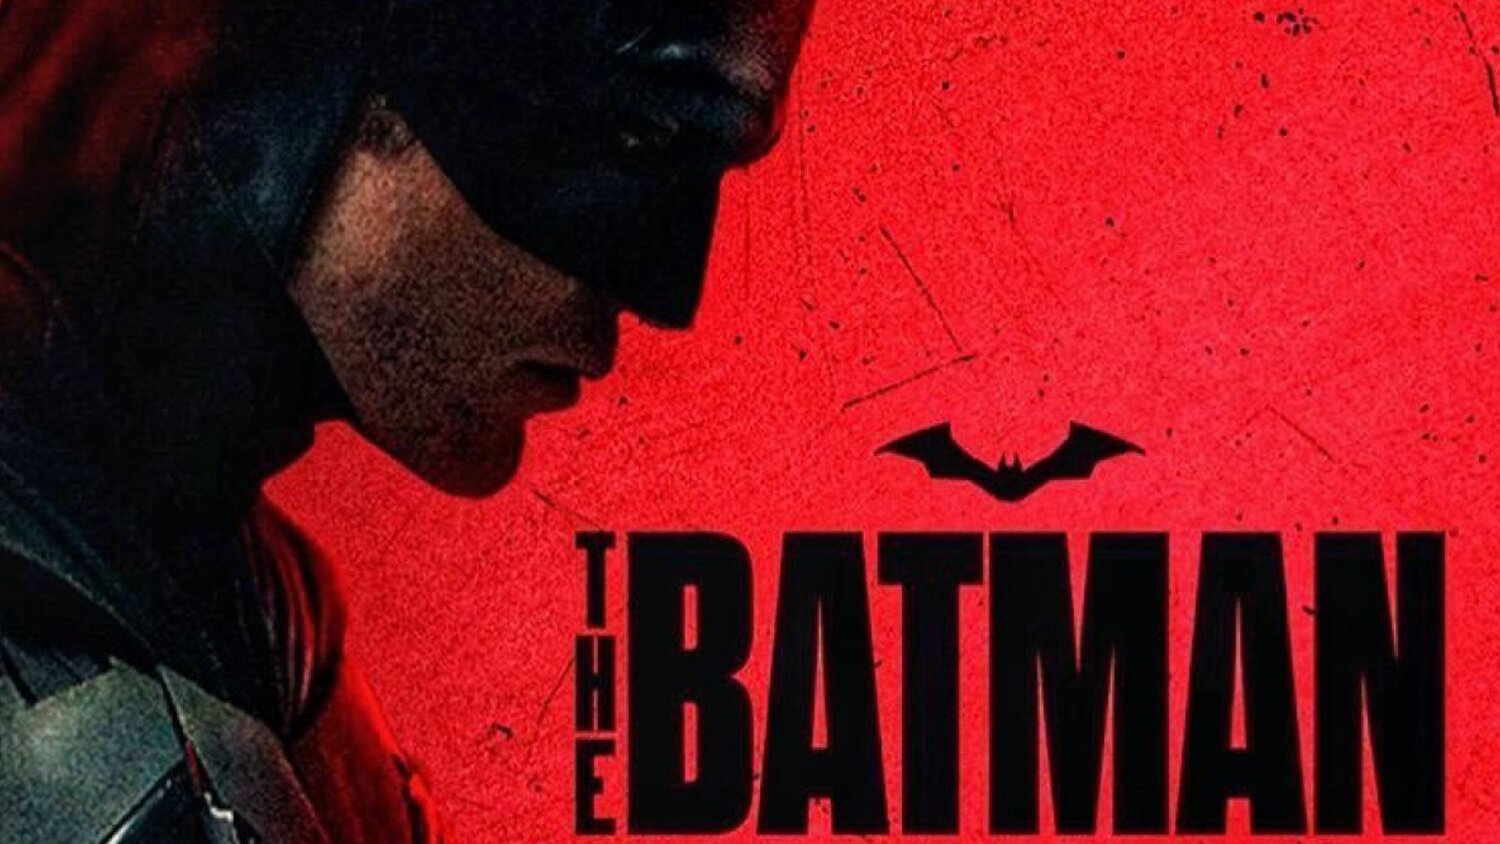 New Poster Art For THE BATMAN